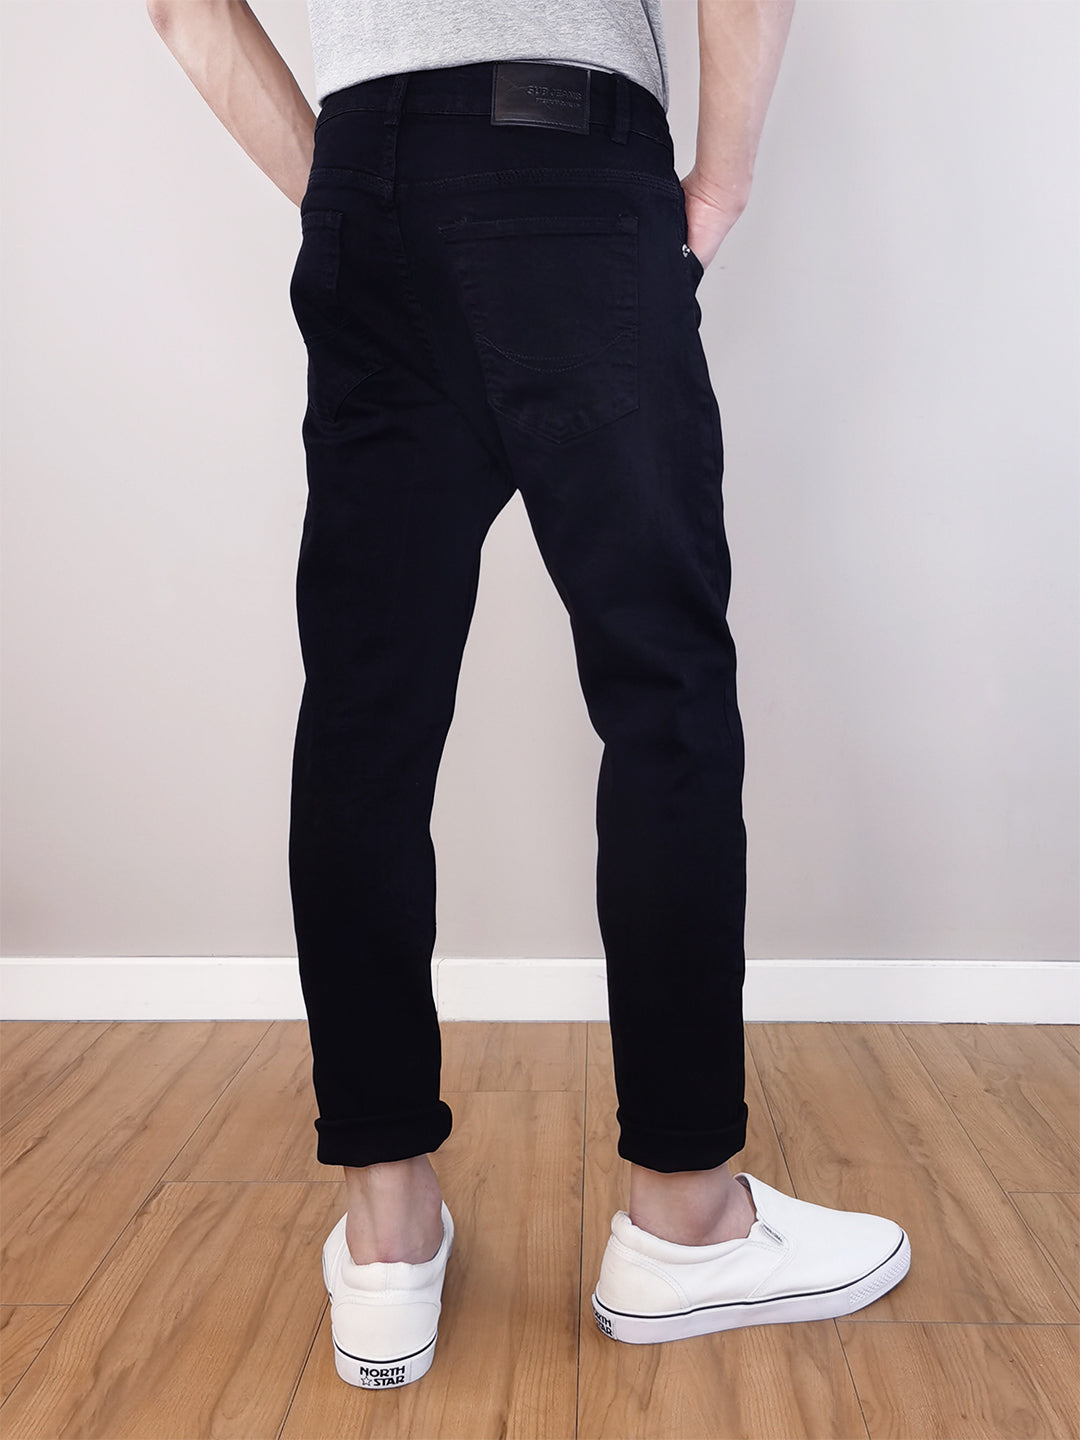 Long Jeans Skinny Fit - Black